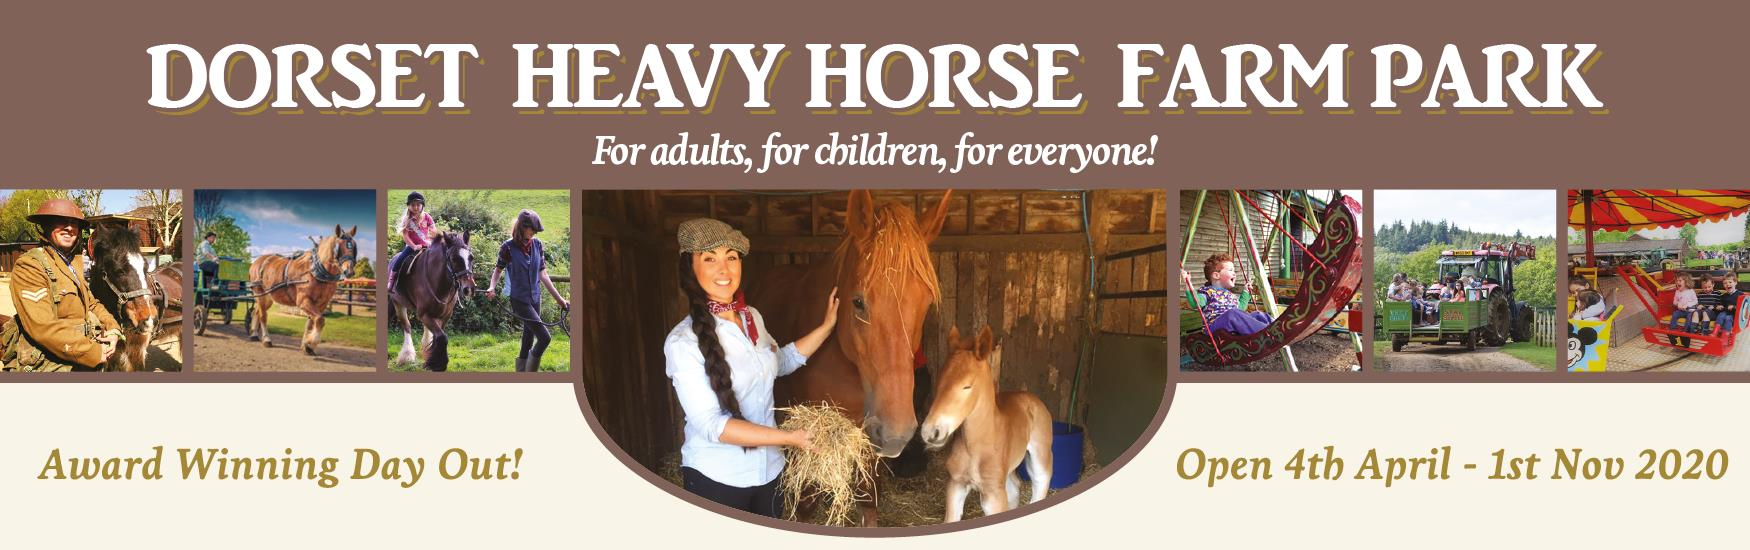 The Dorset Heavy Horse Farm Park is a multi-award-winning attraction located in the heart of Dorset.